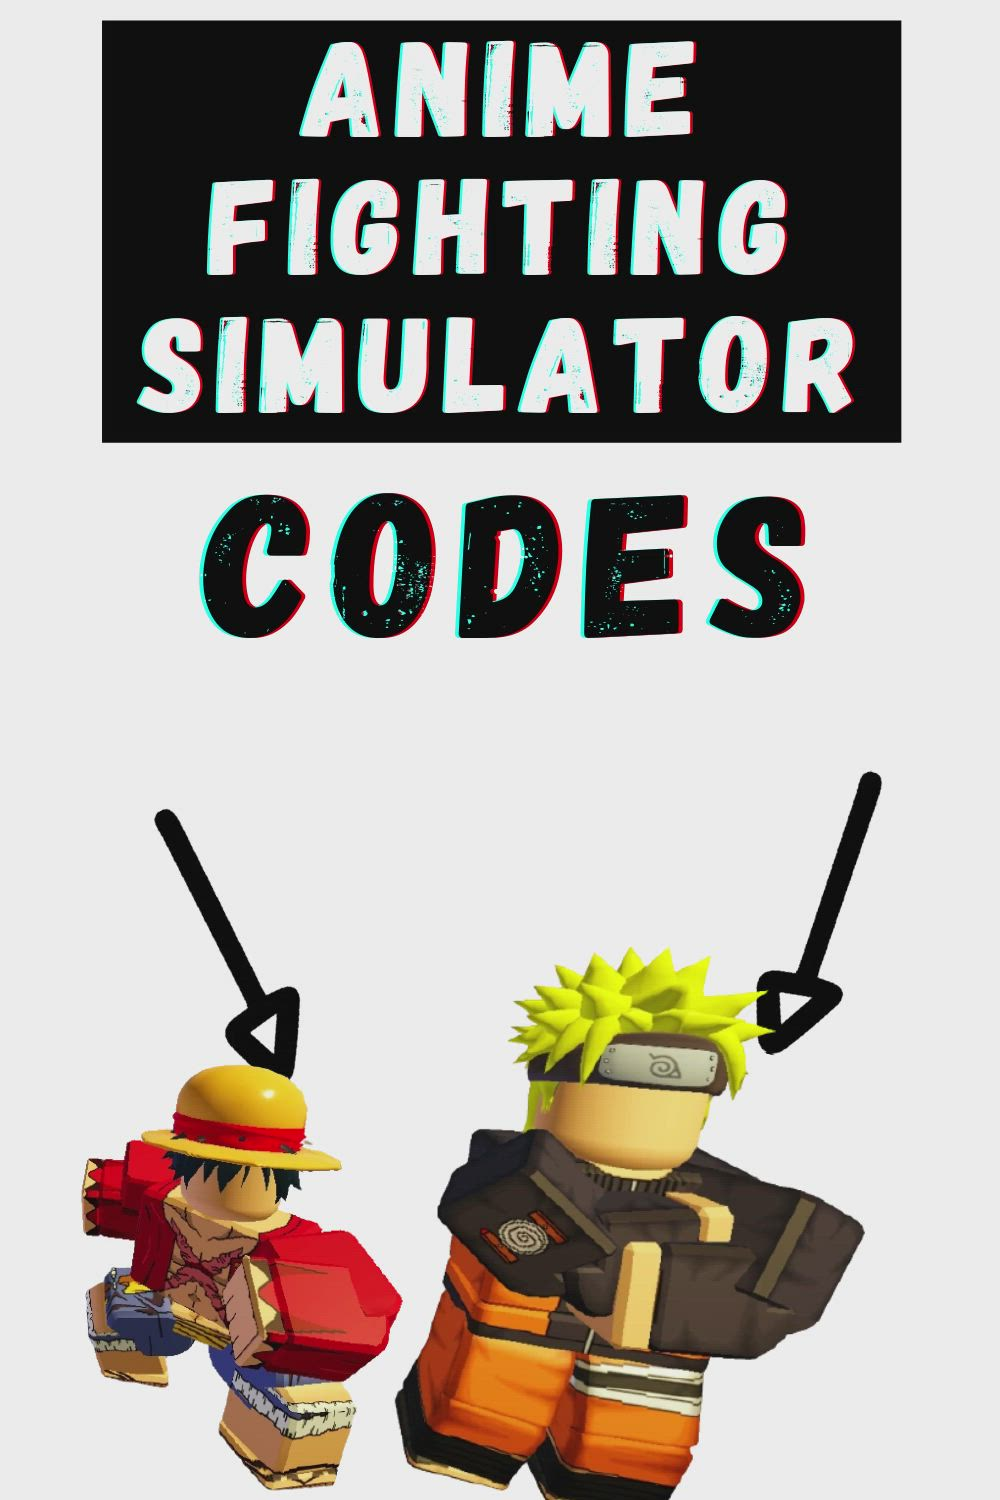 Codes For Roblox Anime Fighting Simulator 2020 August Latest Roblox Anime Fighting Simulator Codes 2020 Video In 2020 Roblox Coding Anime